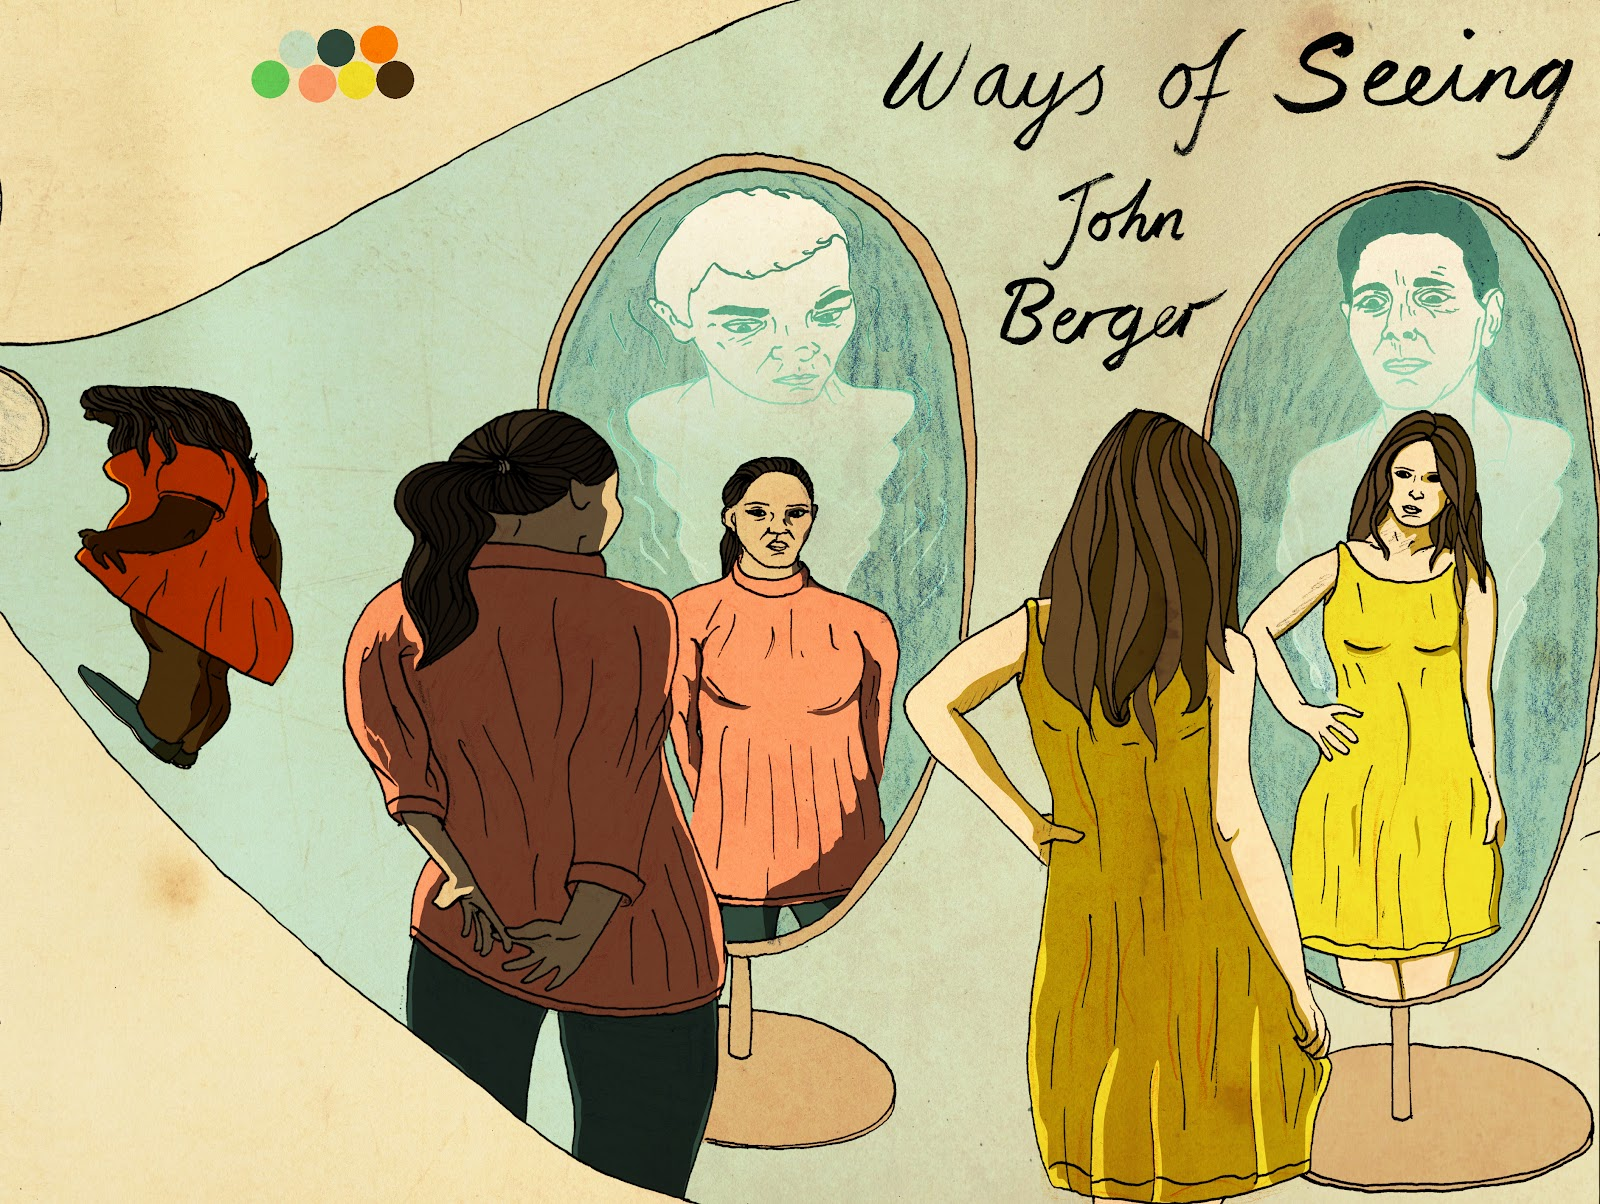 ways of seeing john berger k k club